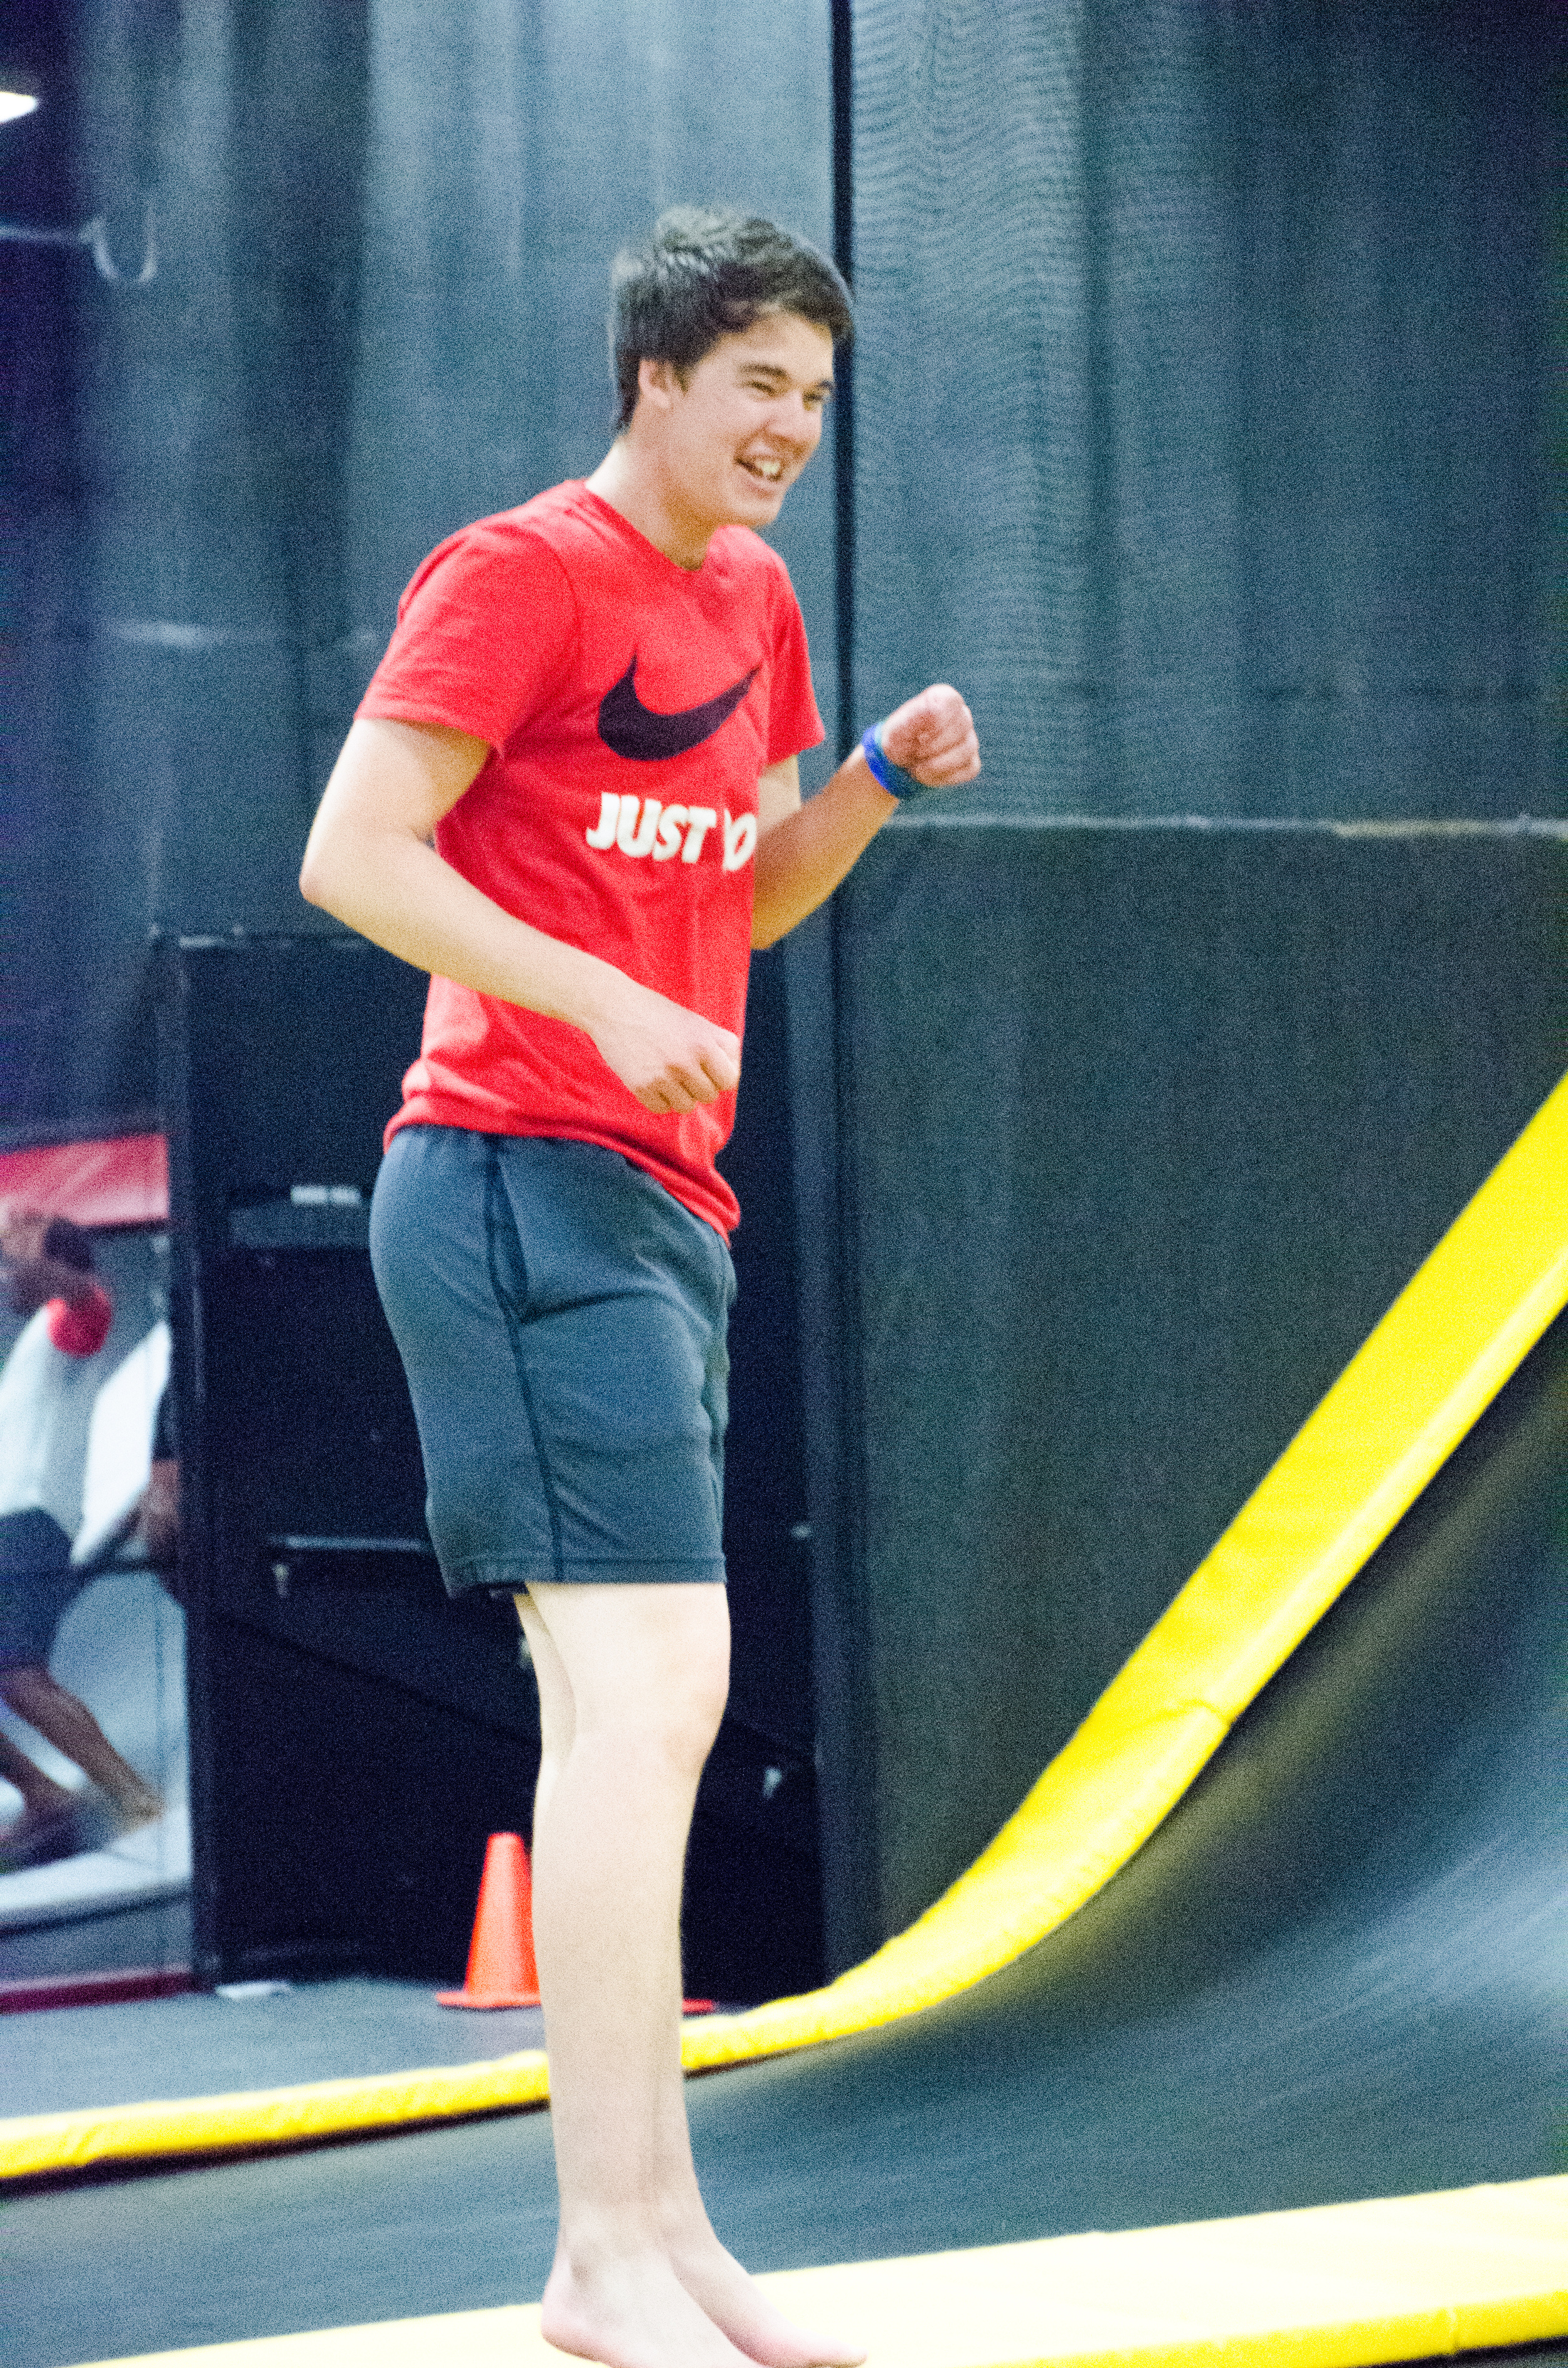 Josh Leister laughs with his friends while jumping on the trampolines.